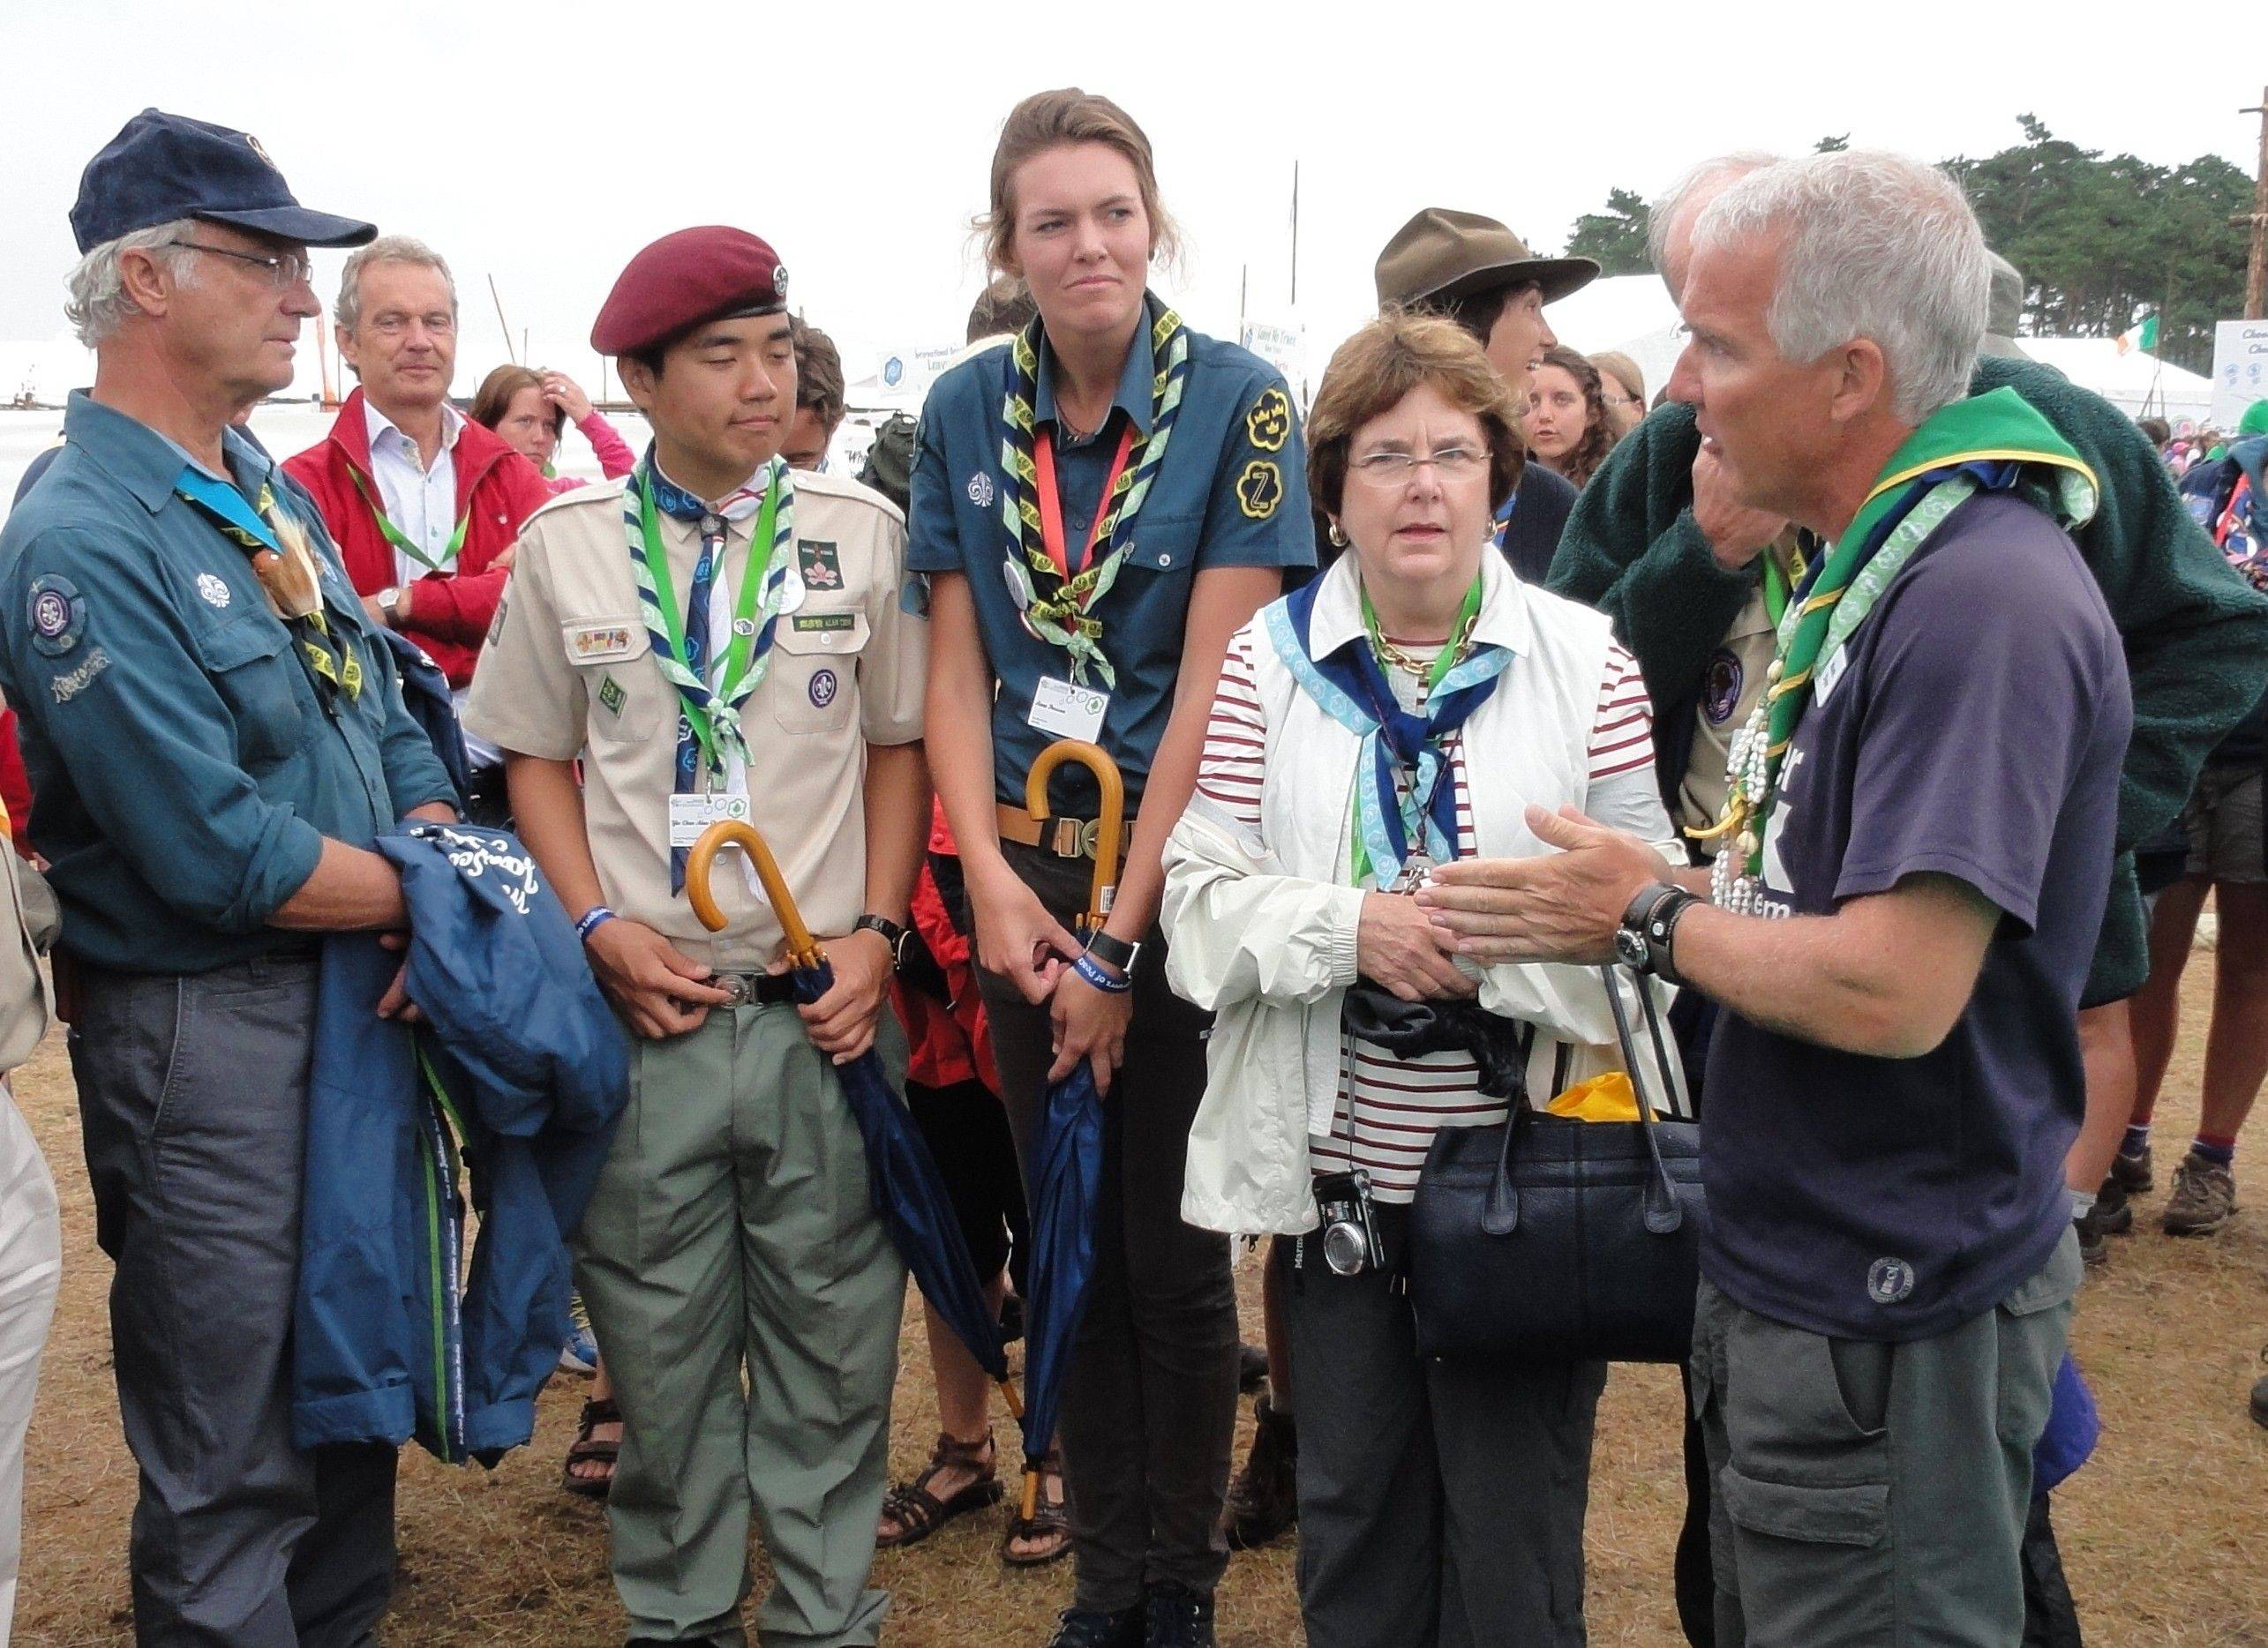 ShelterBox Response Team member Mark Dyer, right, explains the ShelterBox international disaster relief mission to Swedish King Carl XVI Gustaf, left. Dyer, who also serves as the ShelterBox Scout coordinator, welcomed the king to the ShelterBox display and adventure course at the 2011 World Scout Jamboree in Sweden.